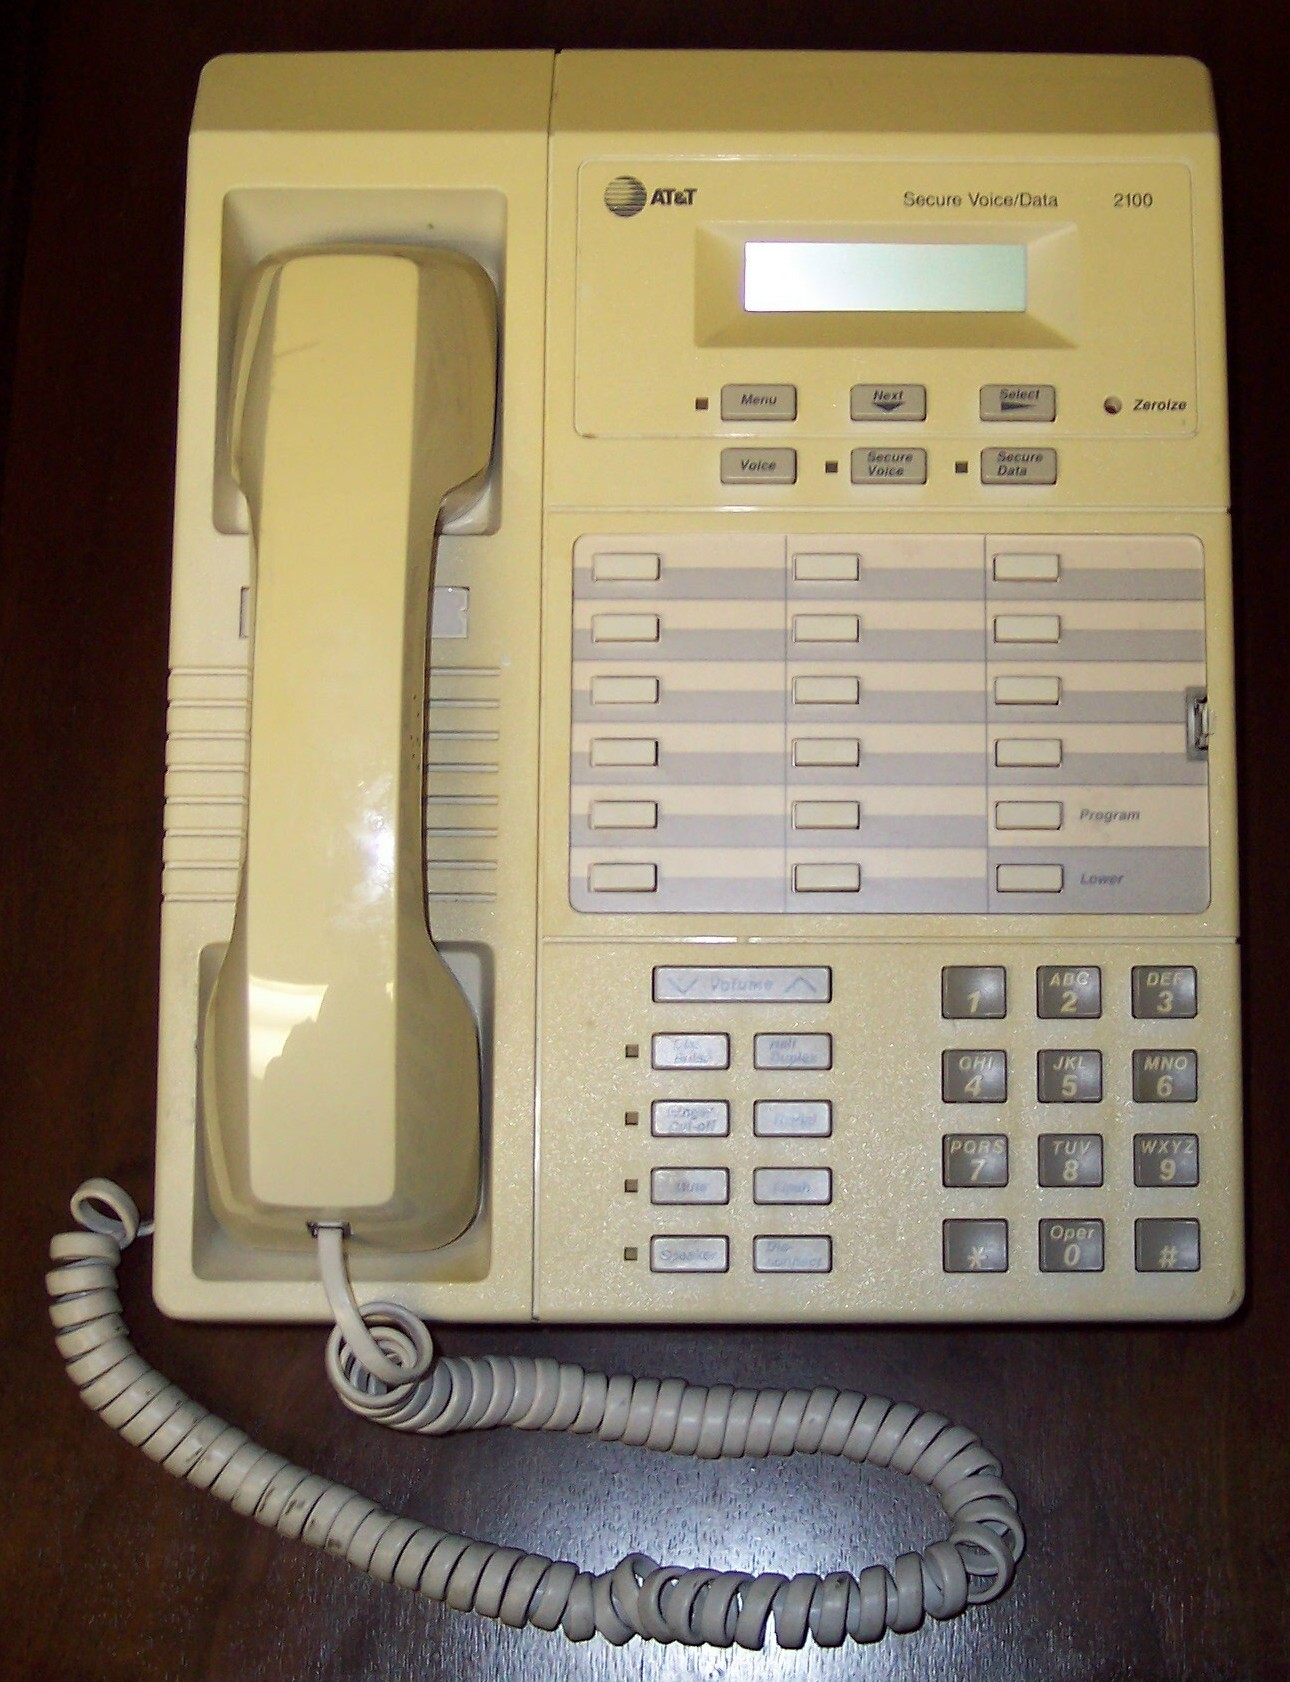 STU-III Secure Phone (Model 2100) by AT&T